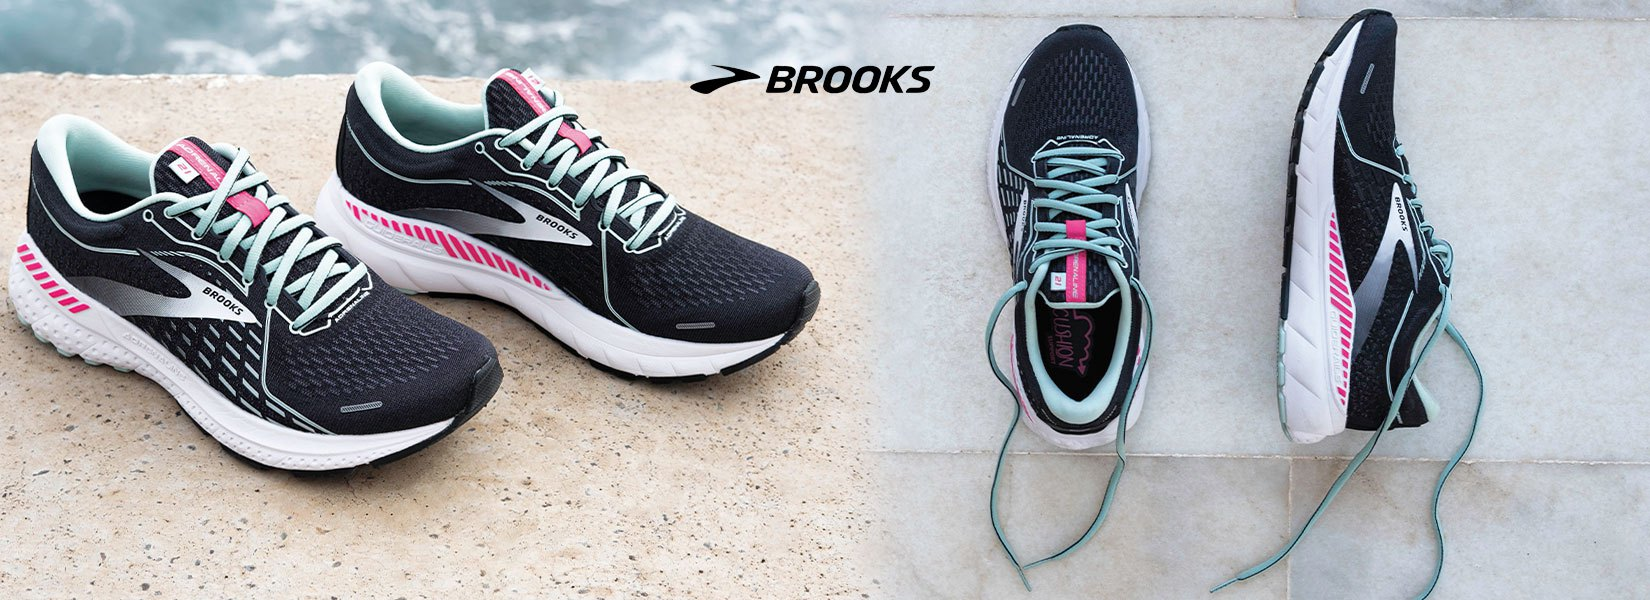 BROOKSnewcolors